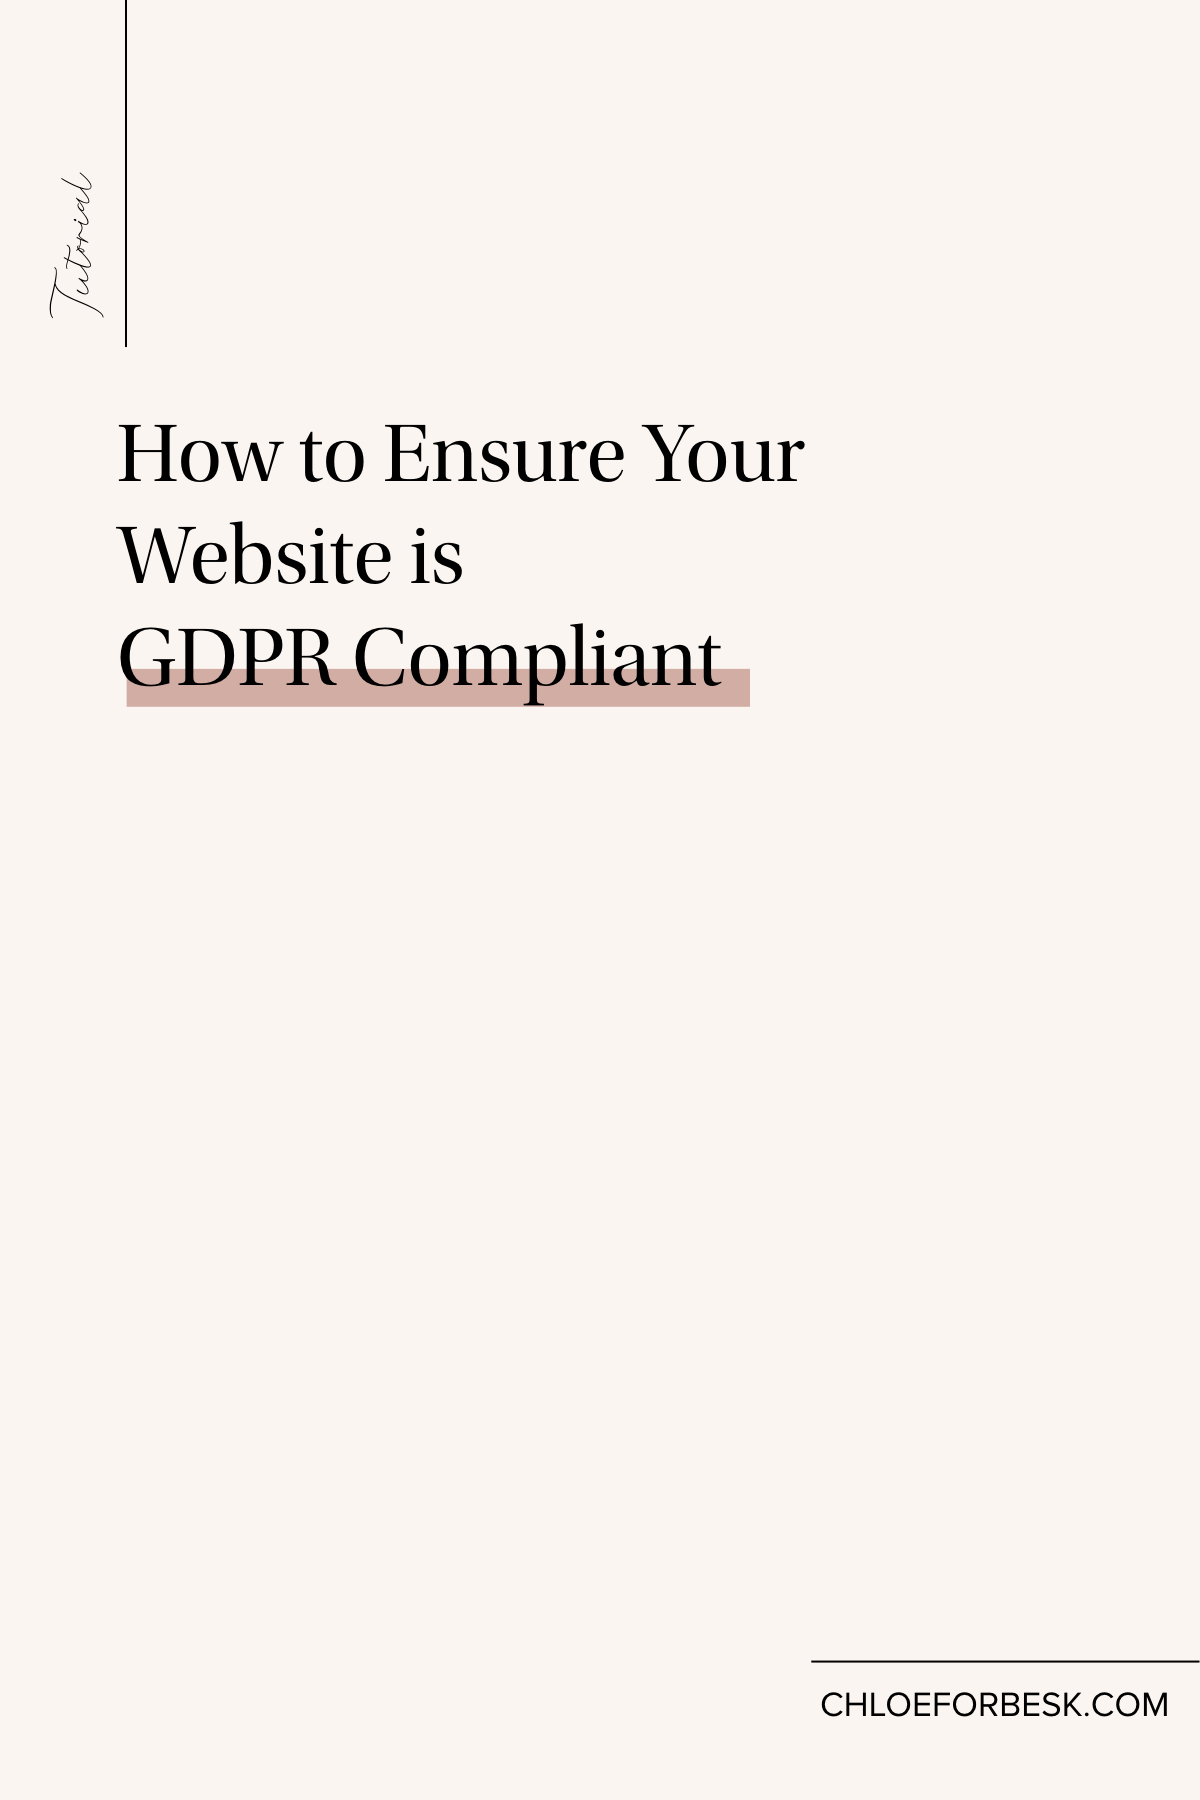 How to Ensure Your Website is GDPR Compliant.002.jpeg